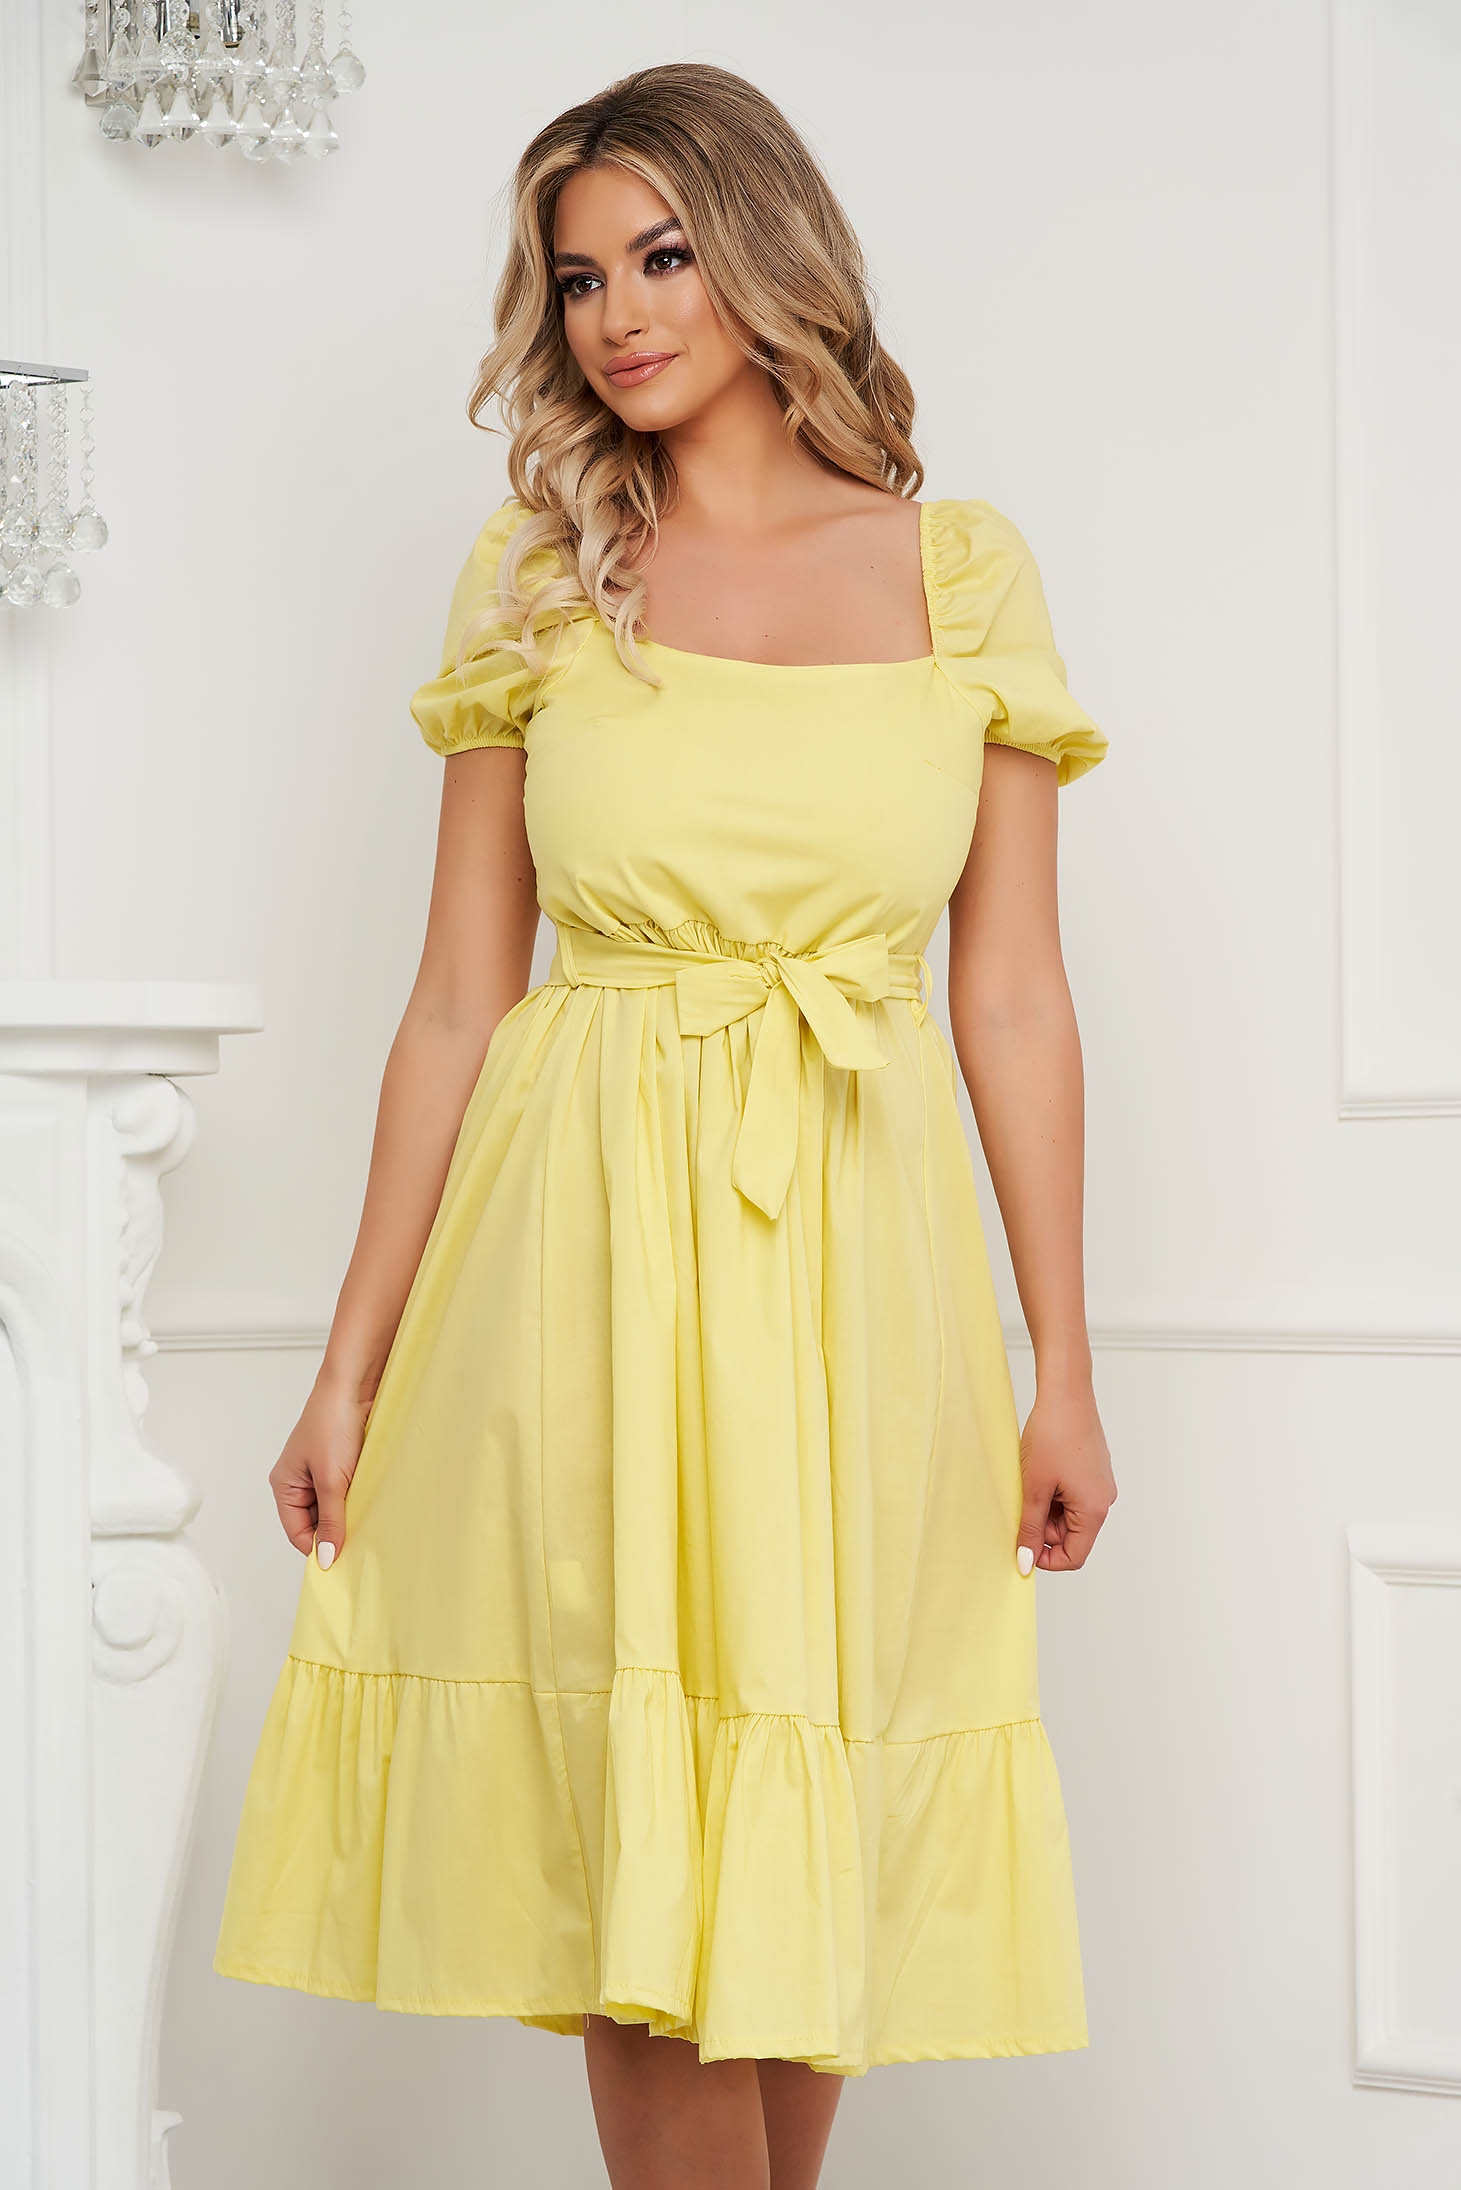 Yellow dress midi cloche accessorized with tied waistband with puffed sleeves